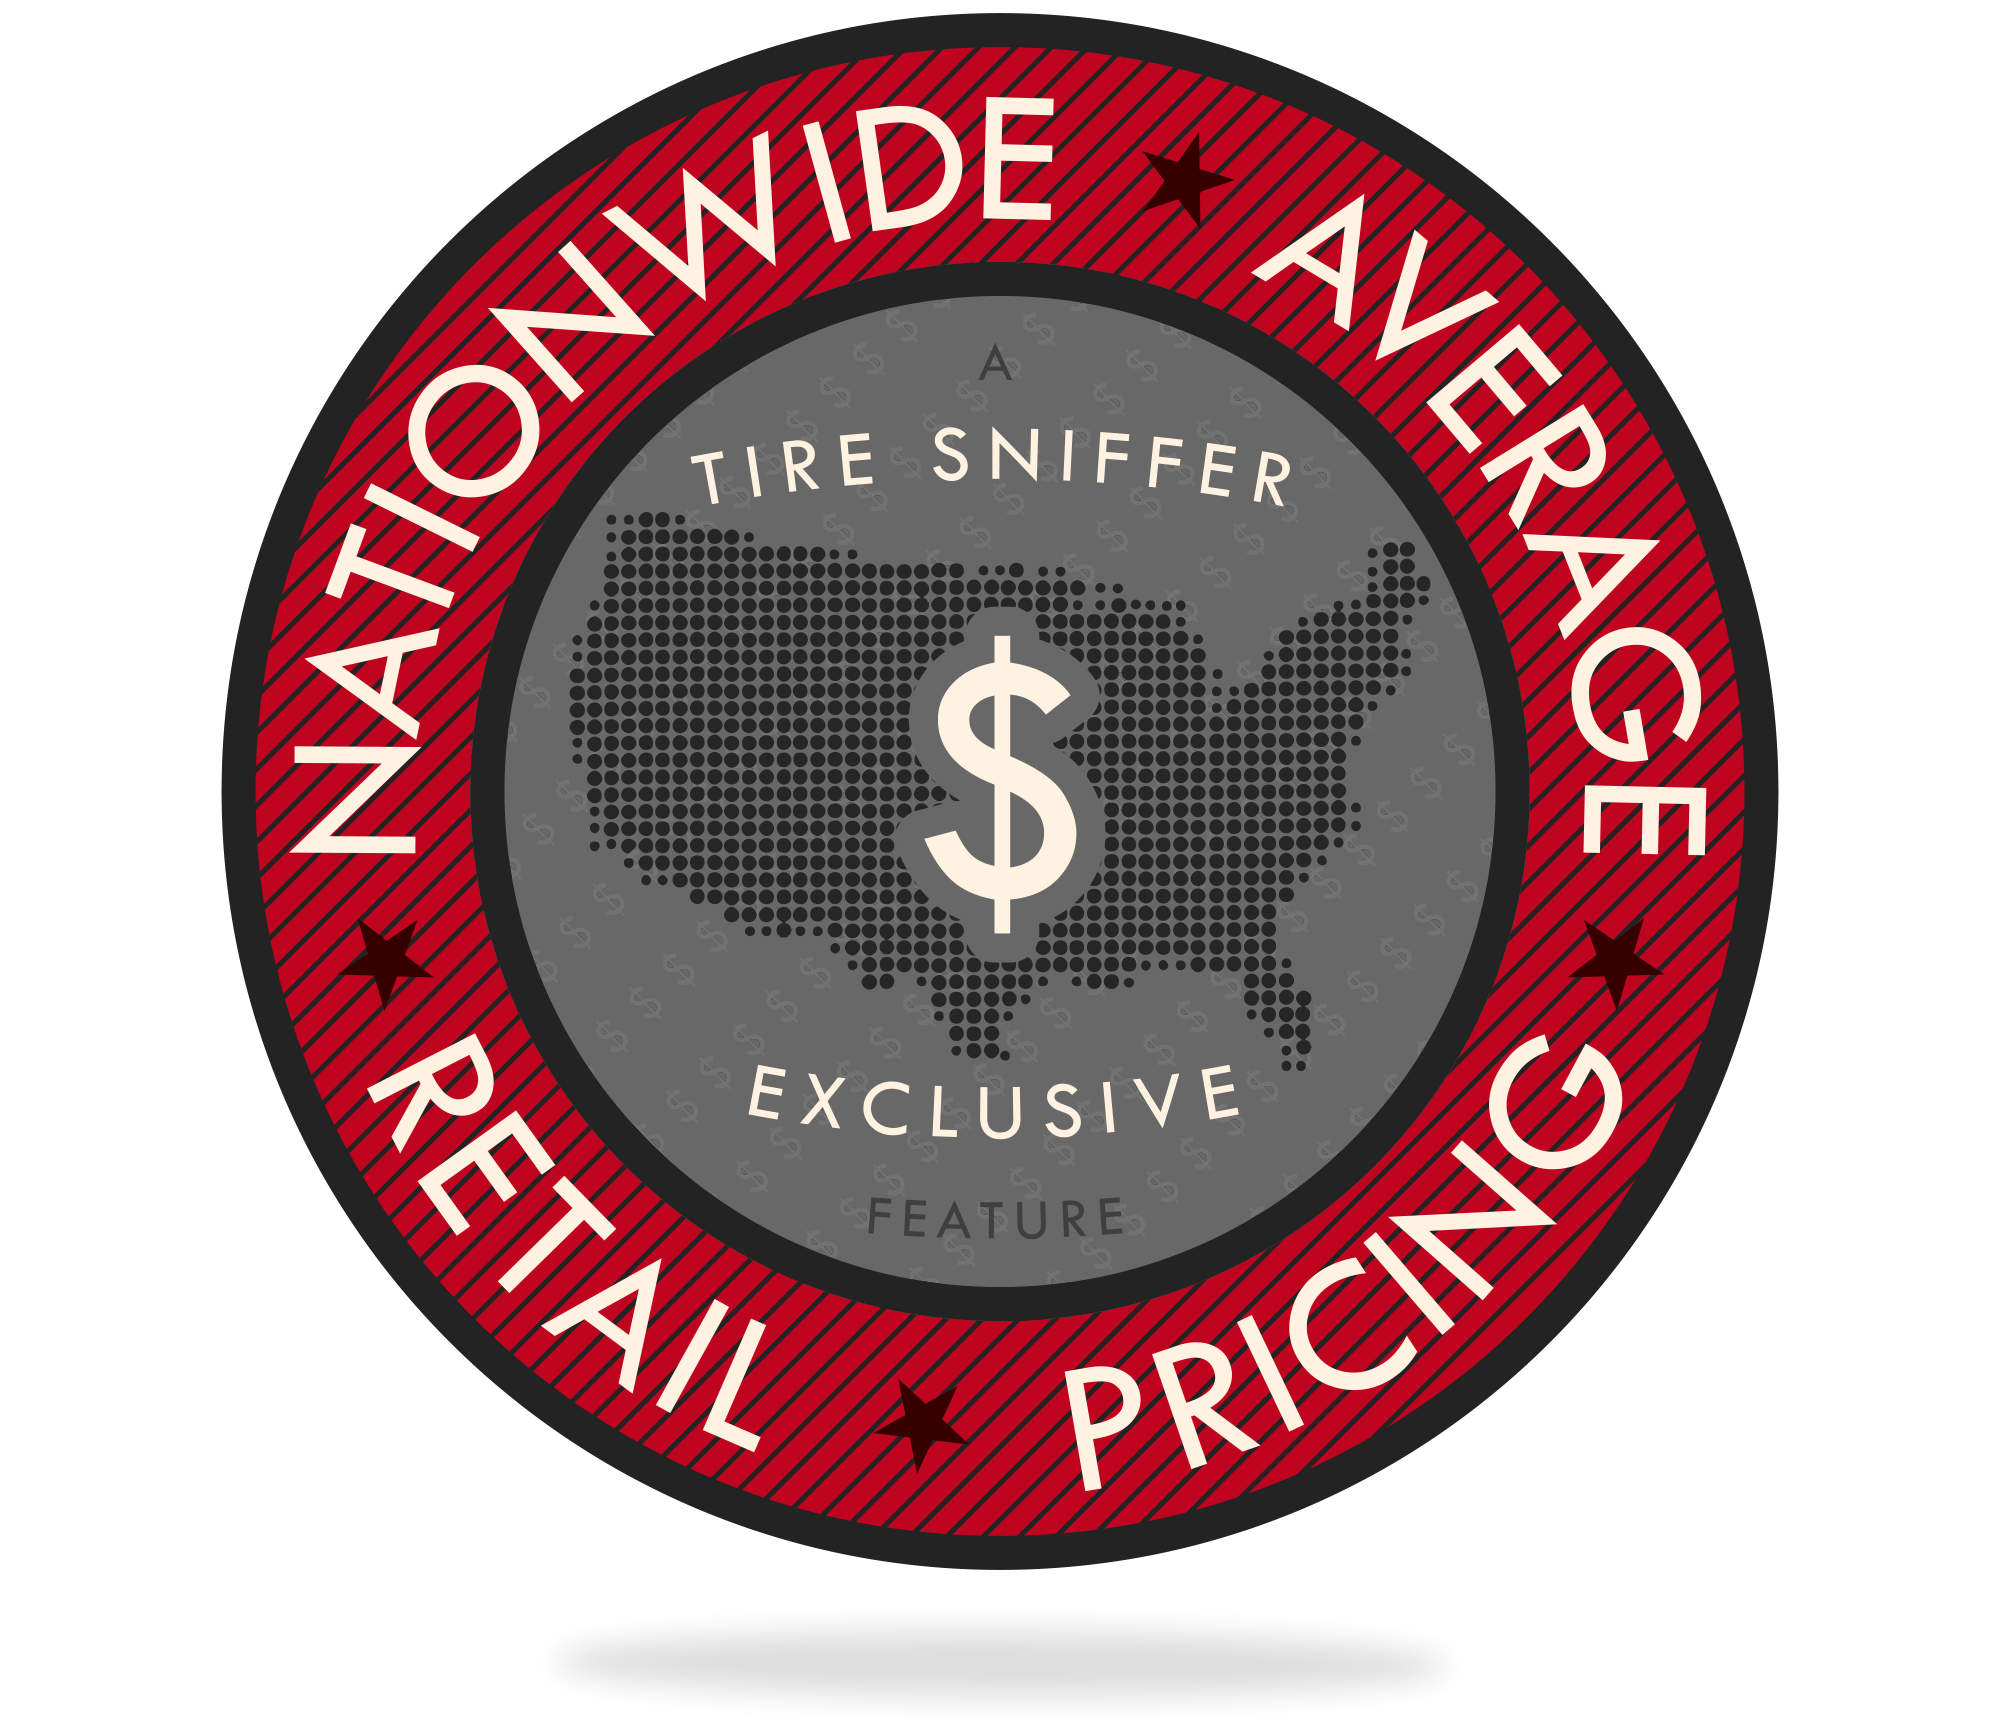 Nationwide Average Retail Pricing on thousands of tires - Only at tiresniffer.com